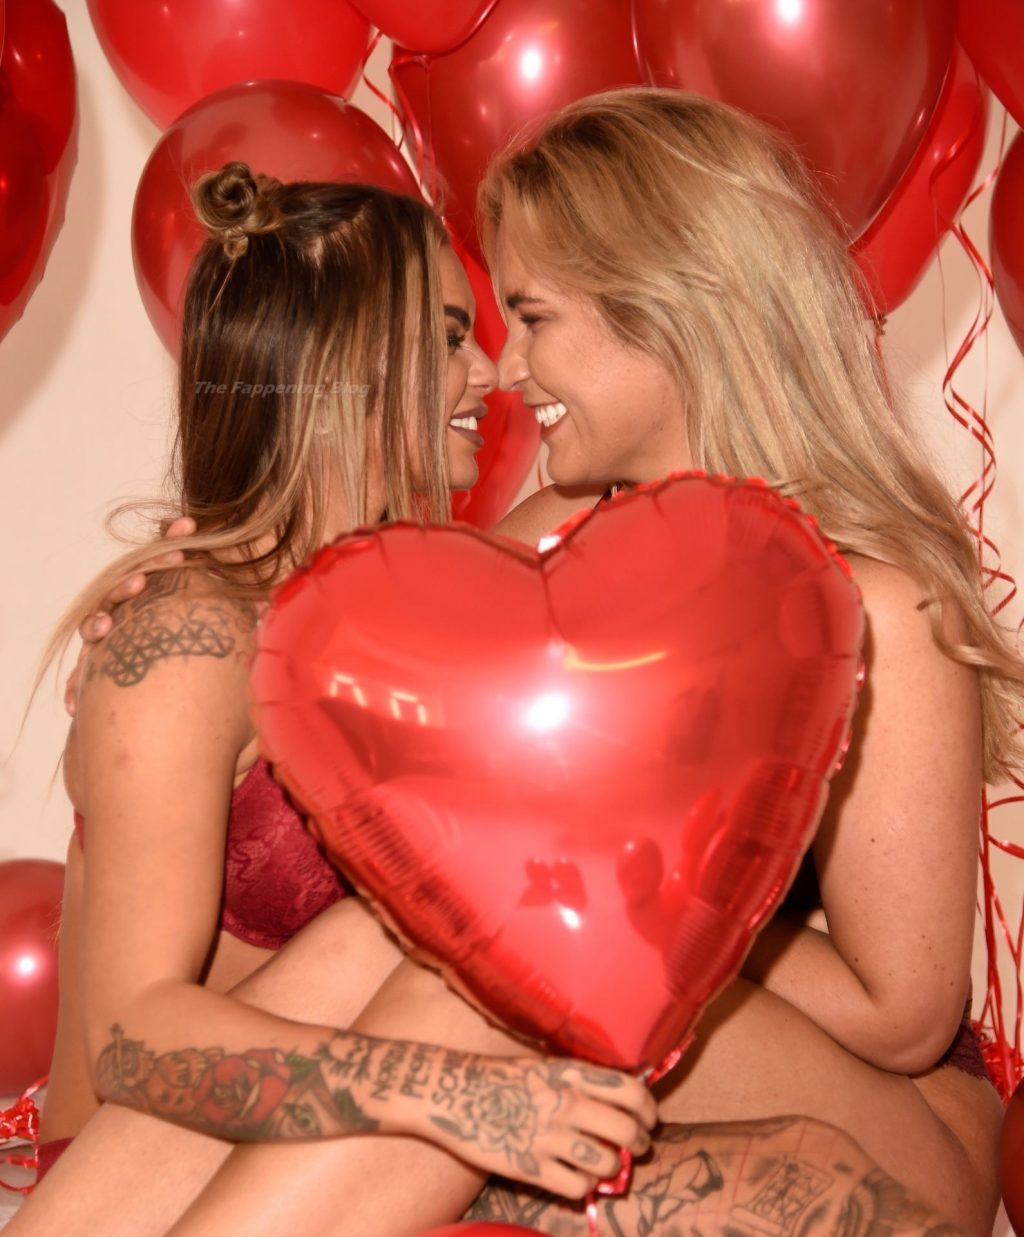 Sarah Hutchinson & Charlotte Taundry Get the Pulses Racing for a Sexy Valentine's Photoshoot (68 Photos)